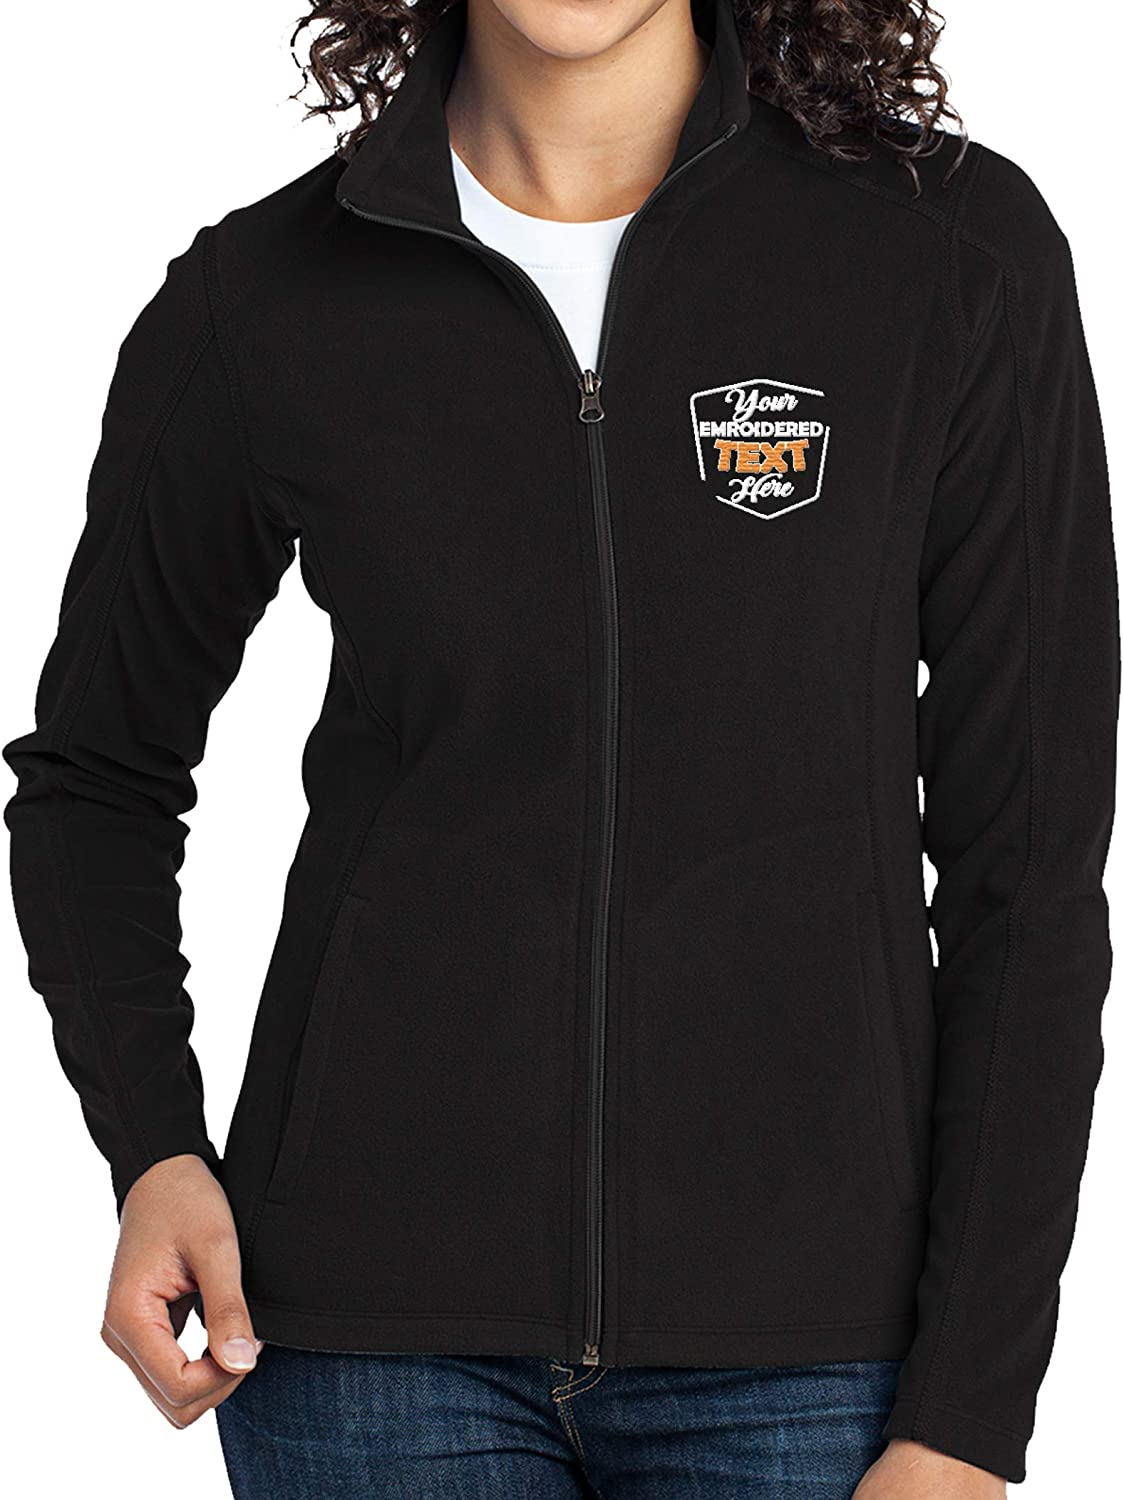 Women Personalized Embroidered Fleece Wholesale Jacket Custom Ladies Z Selling rankings for